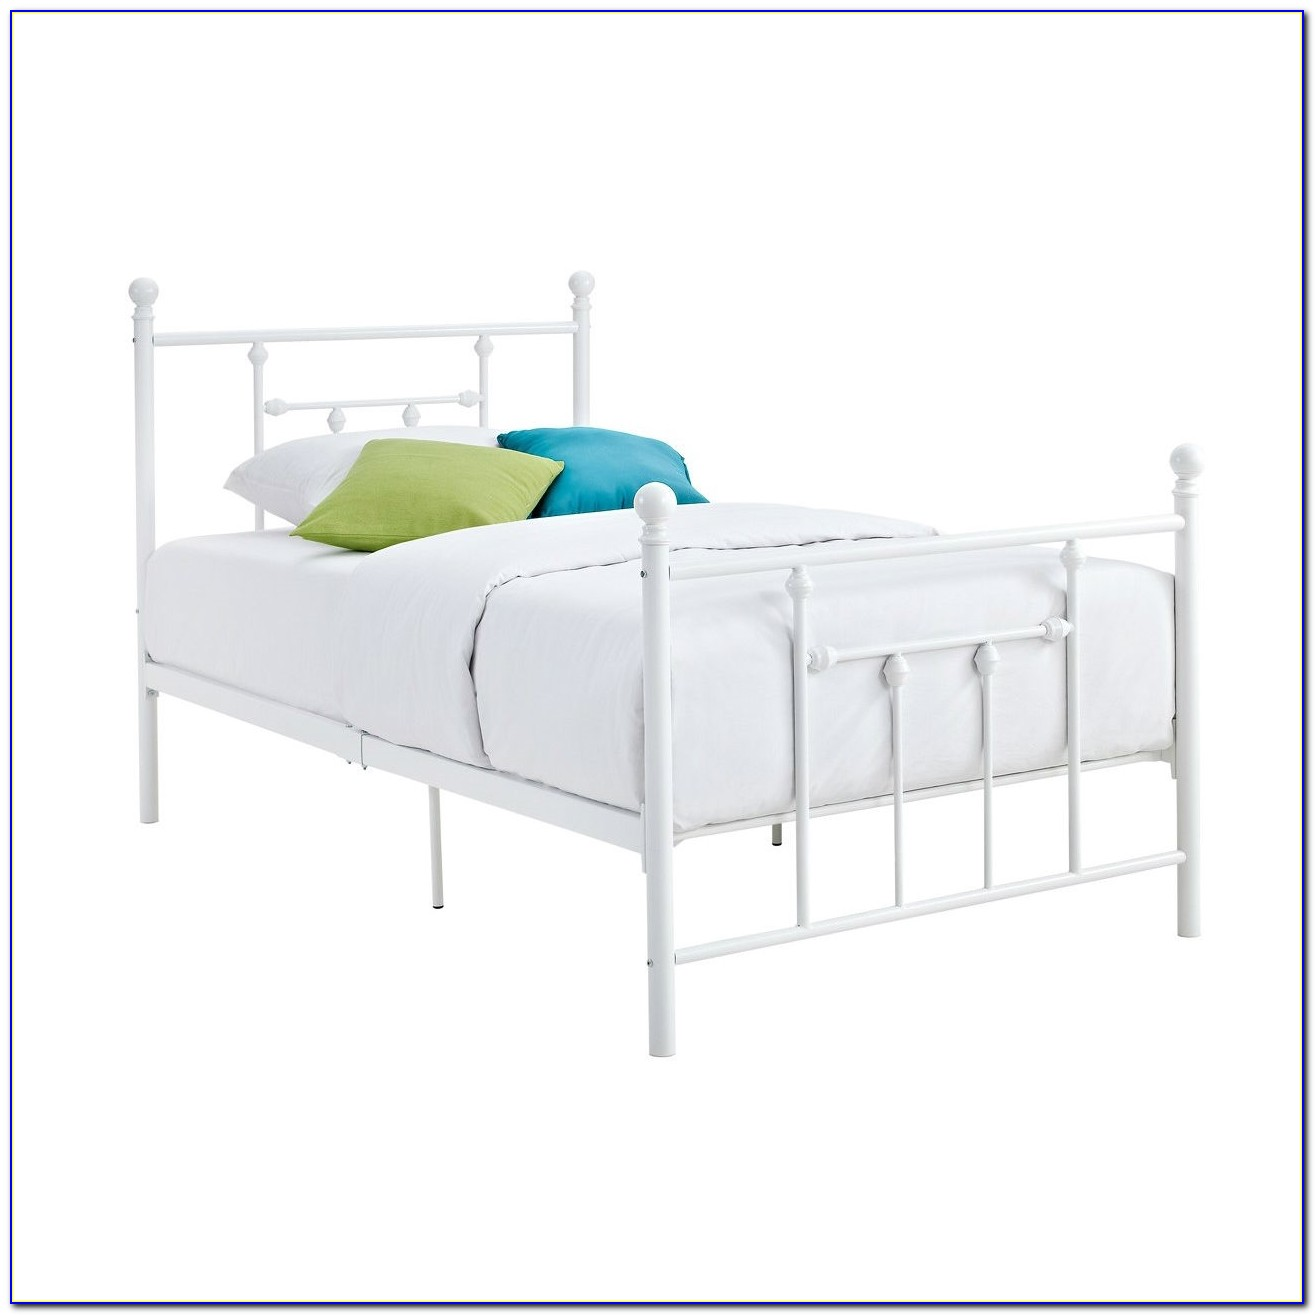 King Platform Beds With Headboard